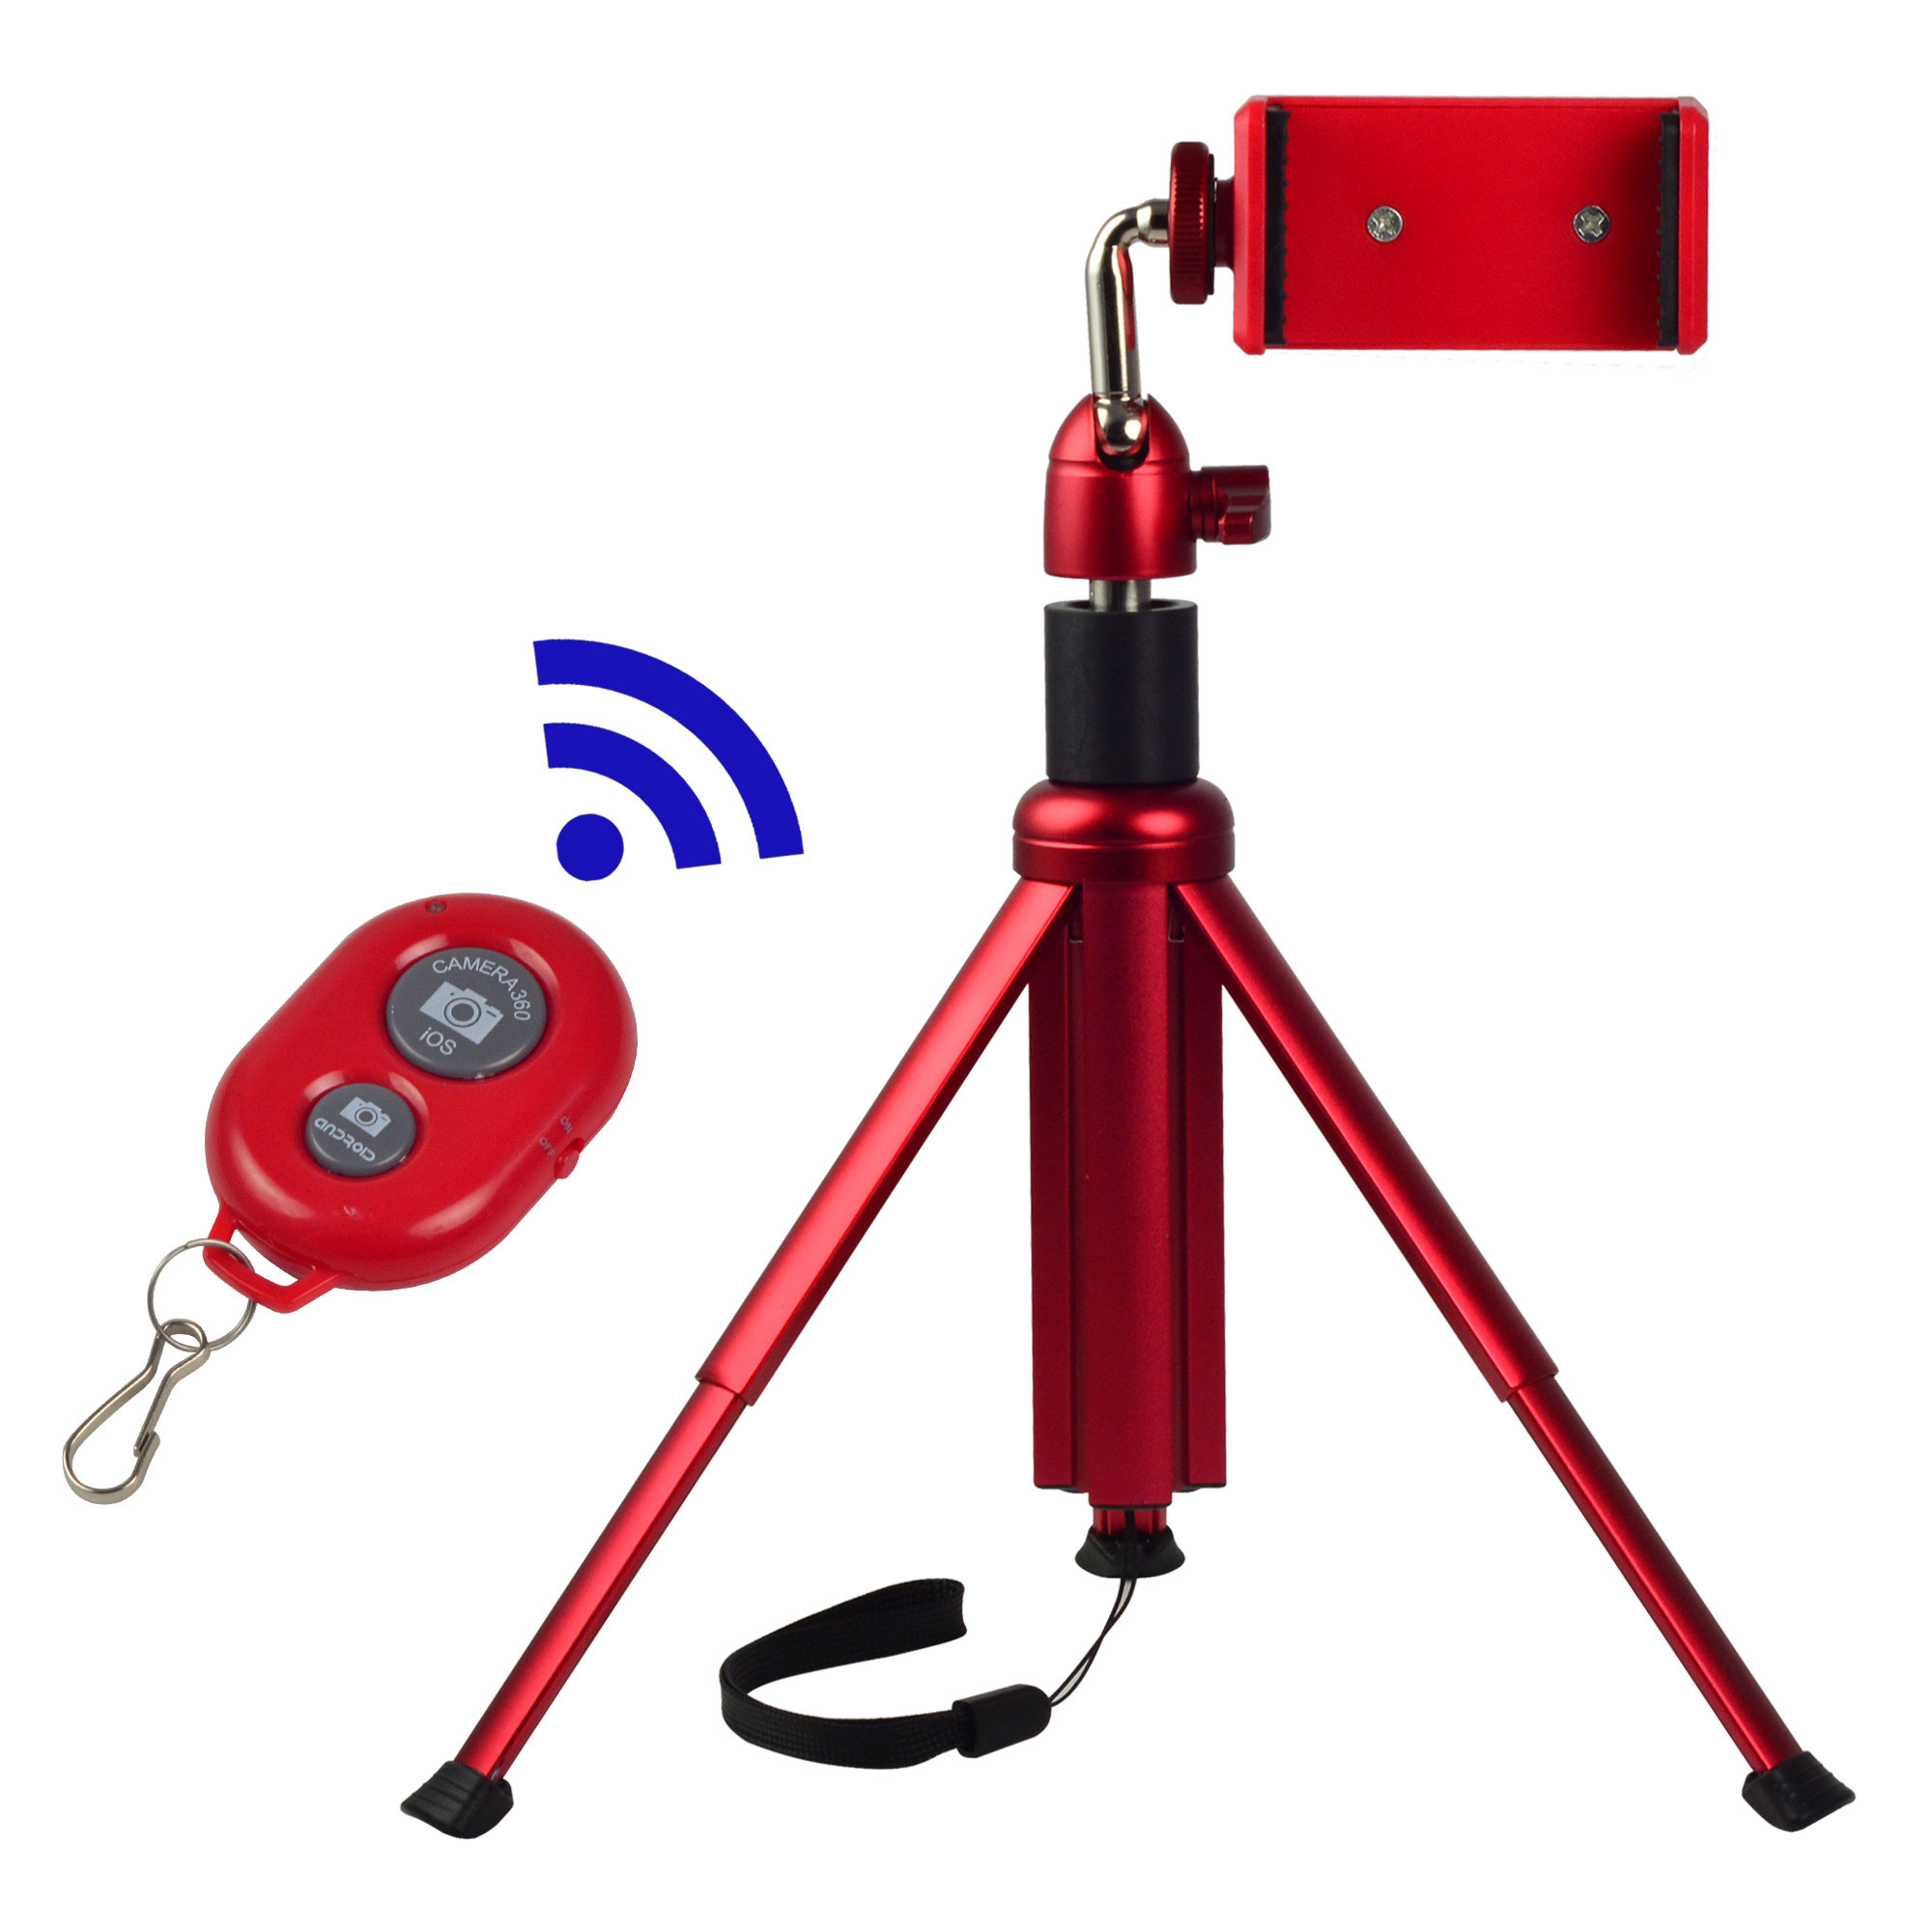 MENGS® M602A 3 in 1 Bluetooth remote control selfie stick/tabletop tripod/ monopod with Aluminum Alloy Ball Head for iPhone 6s Plus Samsung Galary edge Huawei Xiaomi Gopro Hero - Red